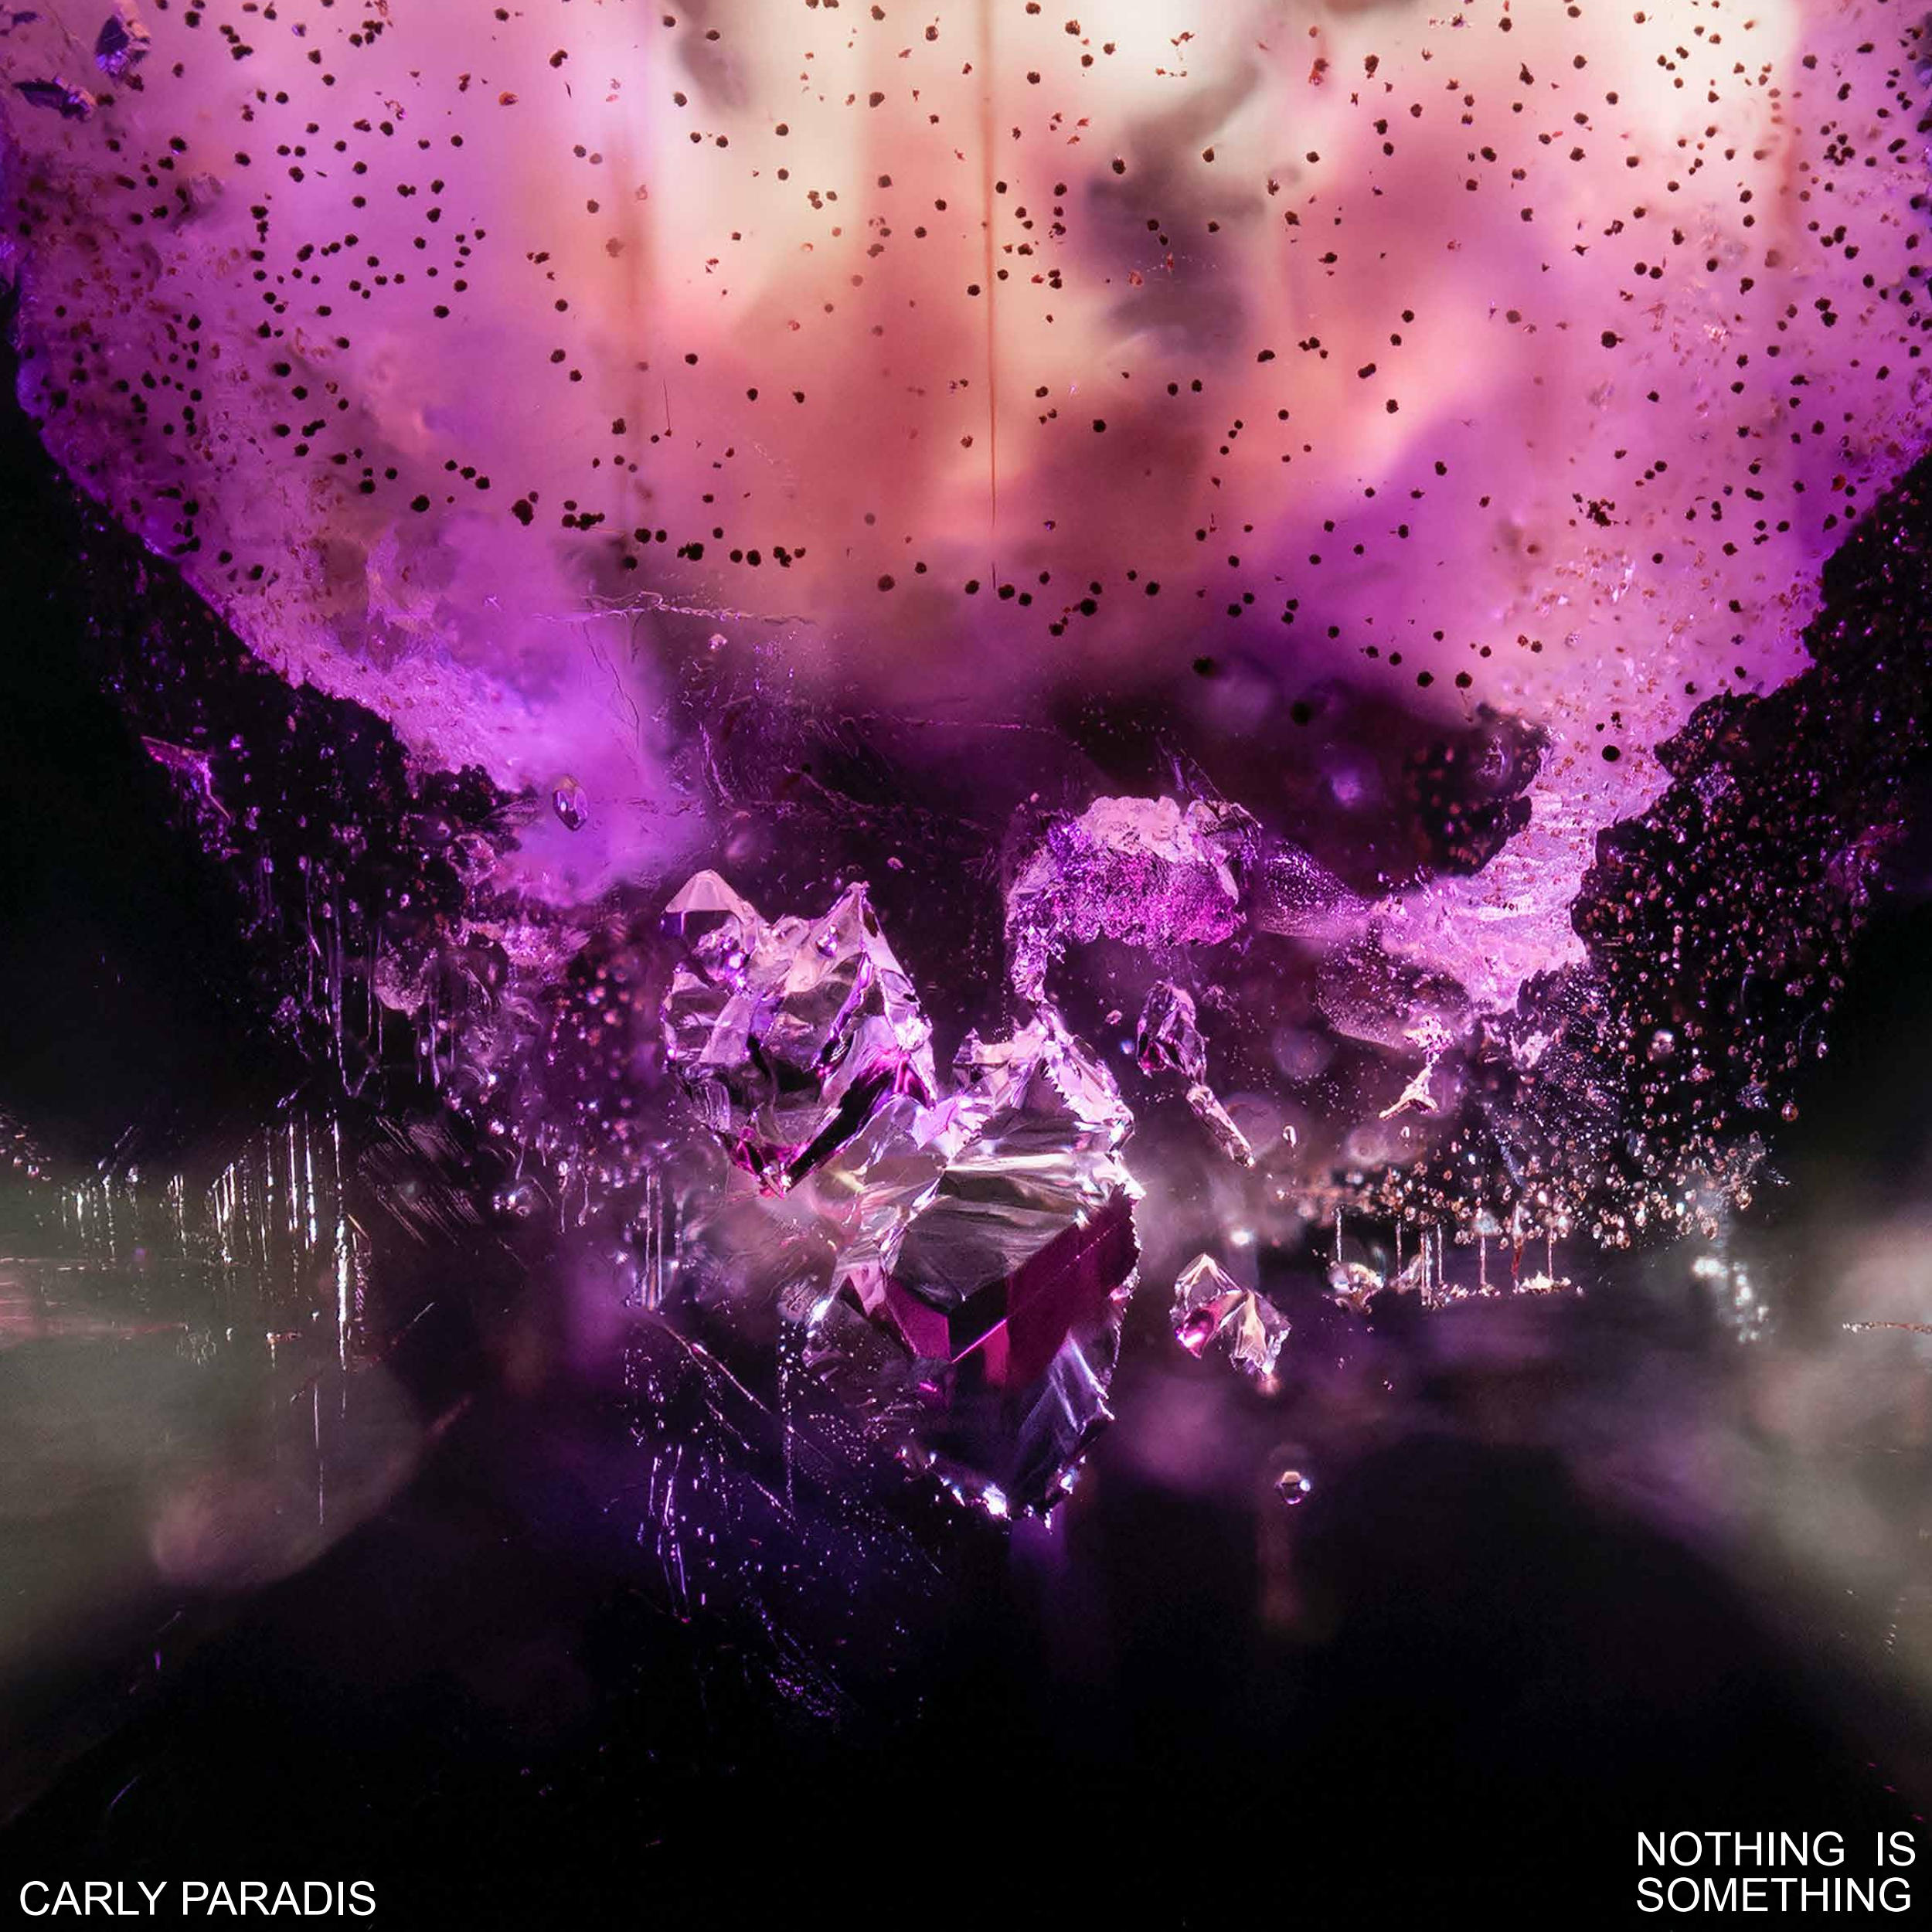 Carly Paradis – The Crushing Weight of history (Michael Stein of S U R V I V E Remix)